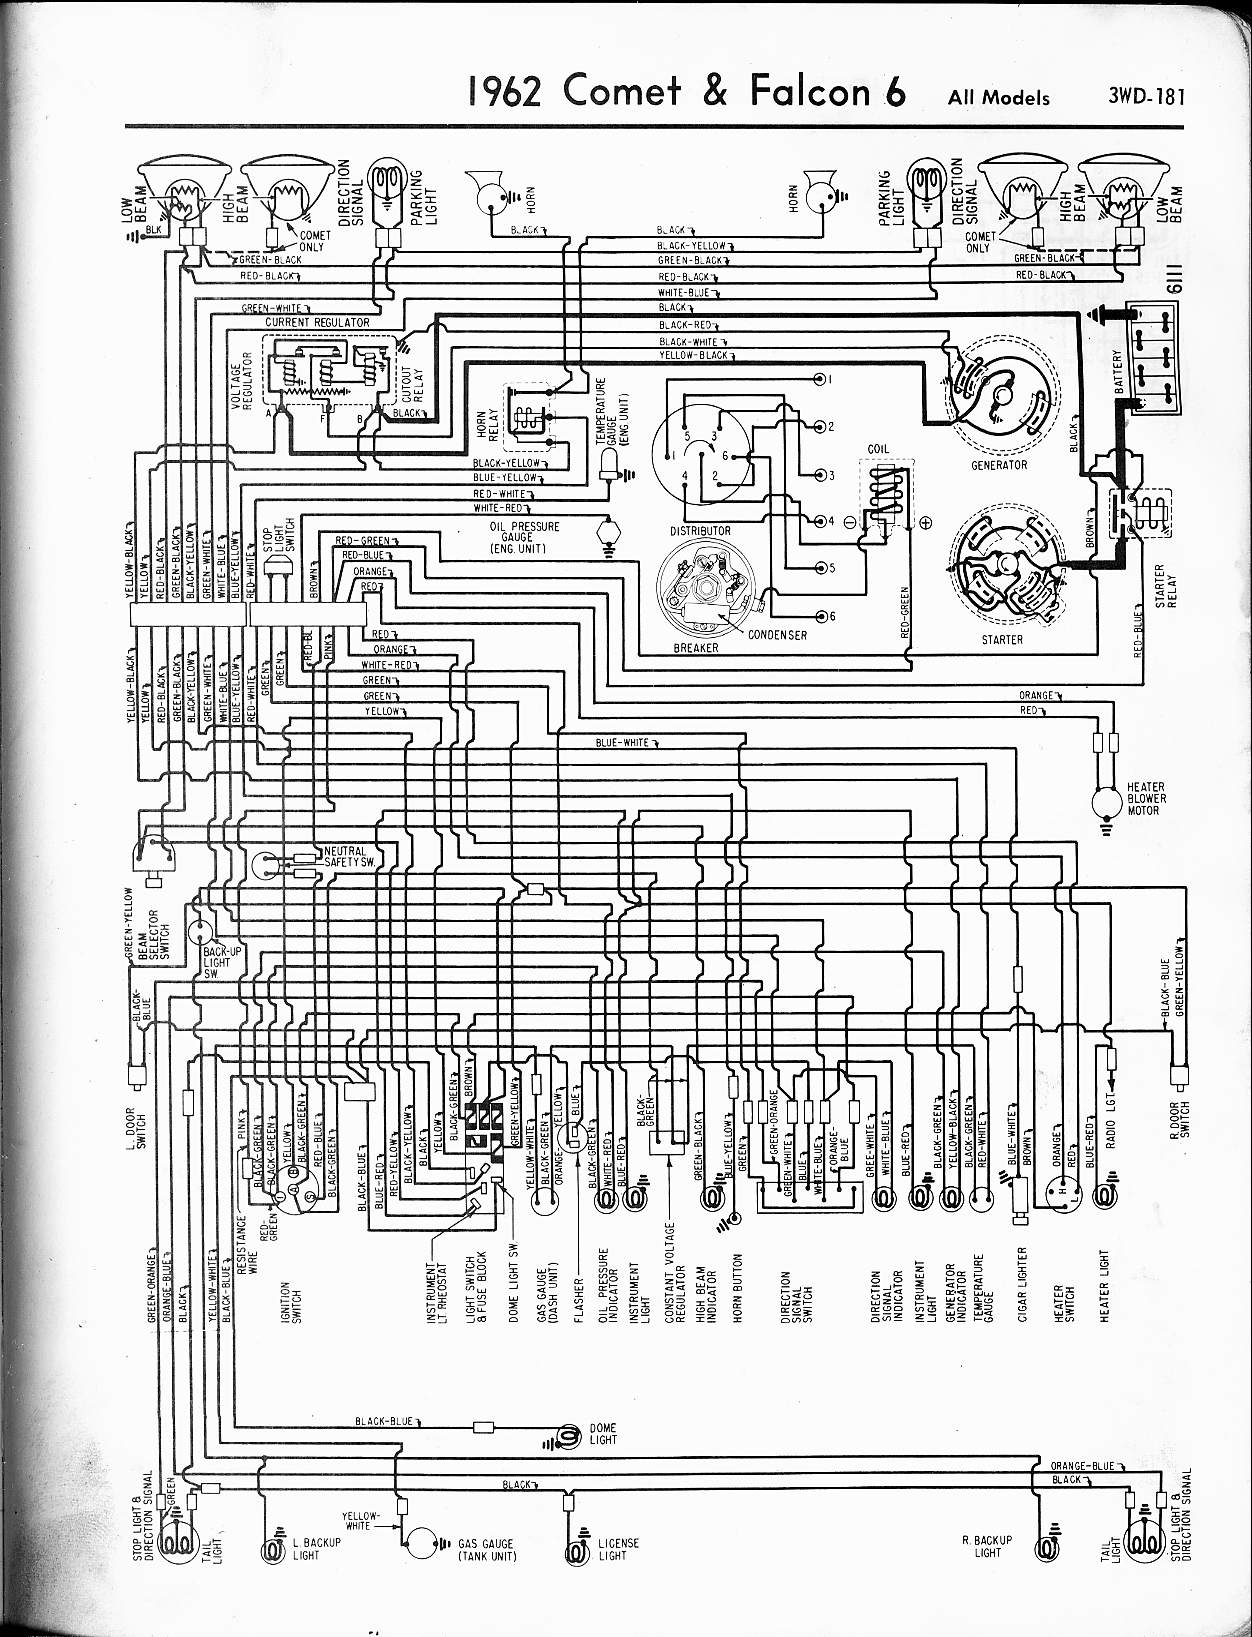 Stereo Wiring Diagram For El Falcon Strategy Design Audio Diagrams 2001 Gmc 57 65 Ford Rh Oldcarmanualproject Com 97 Chevy Tahoe Radio